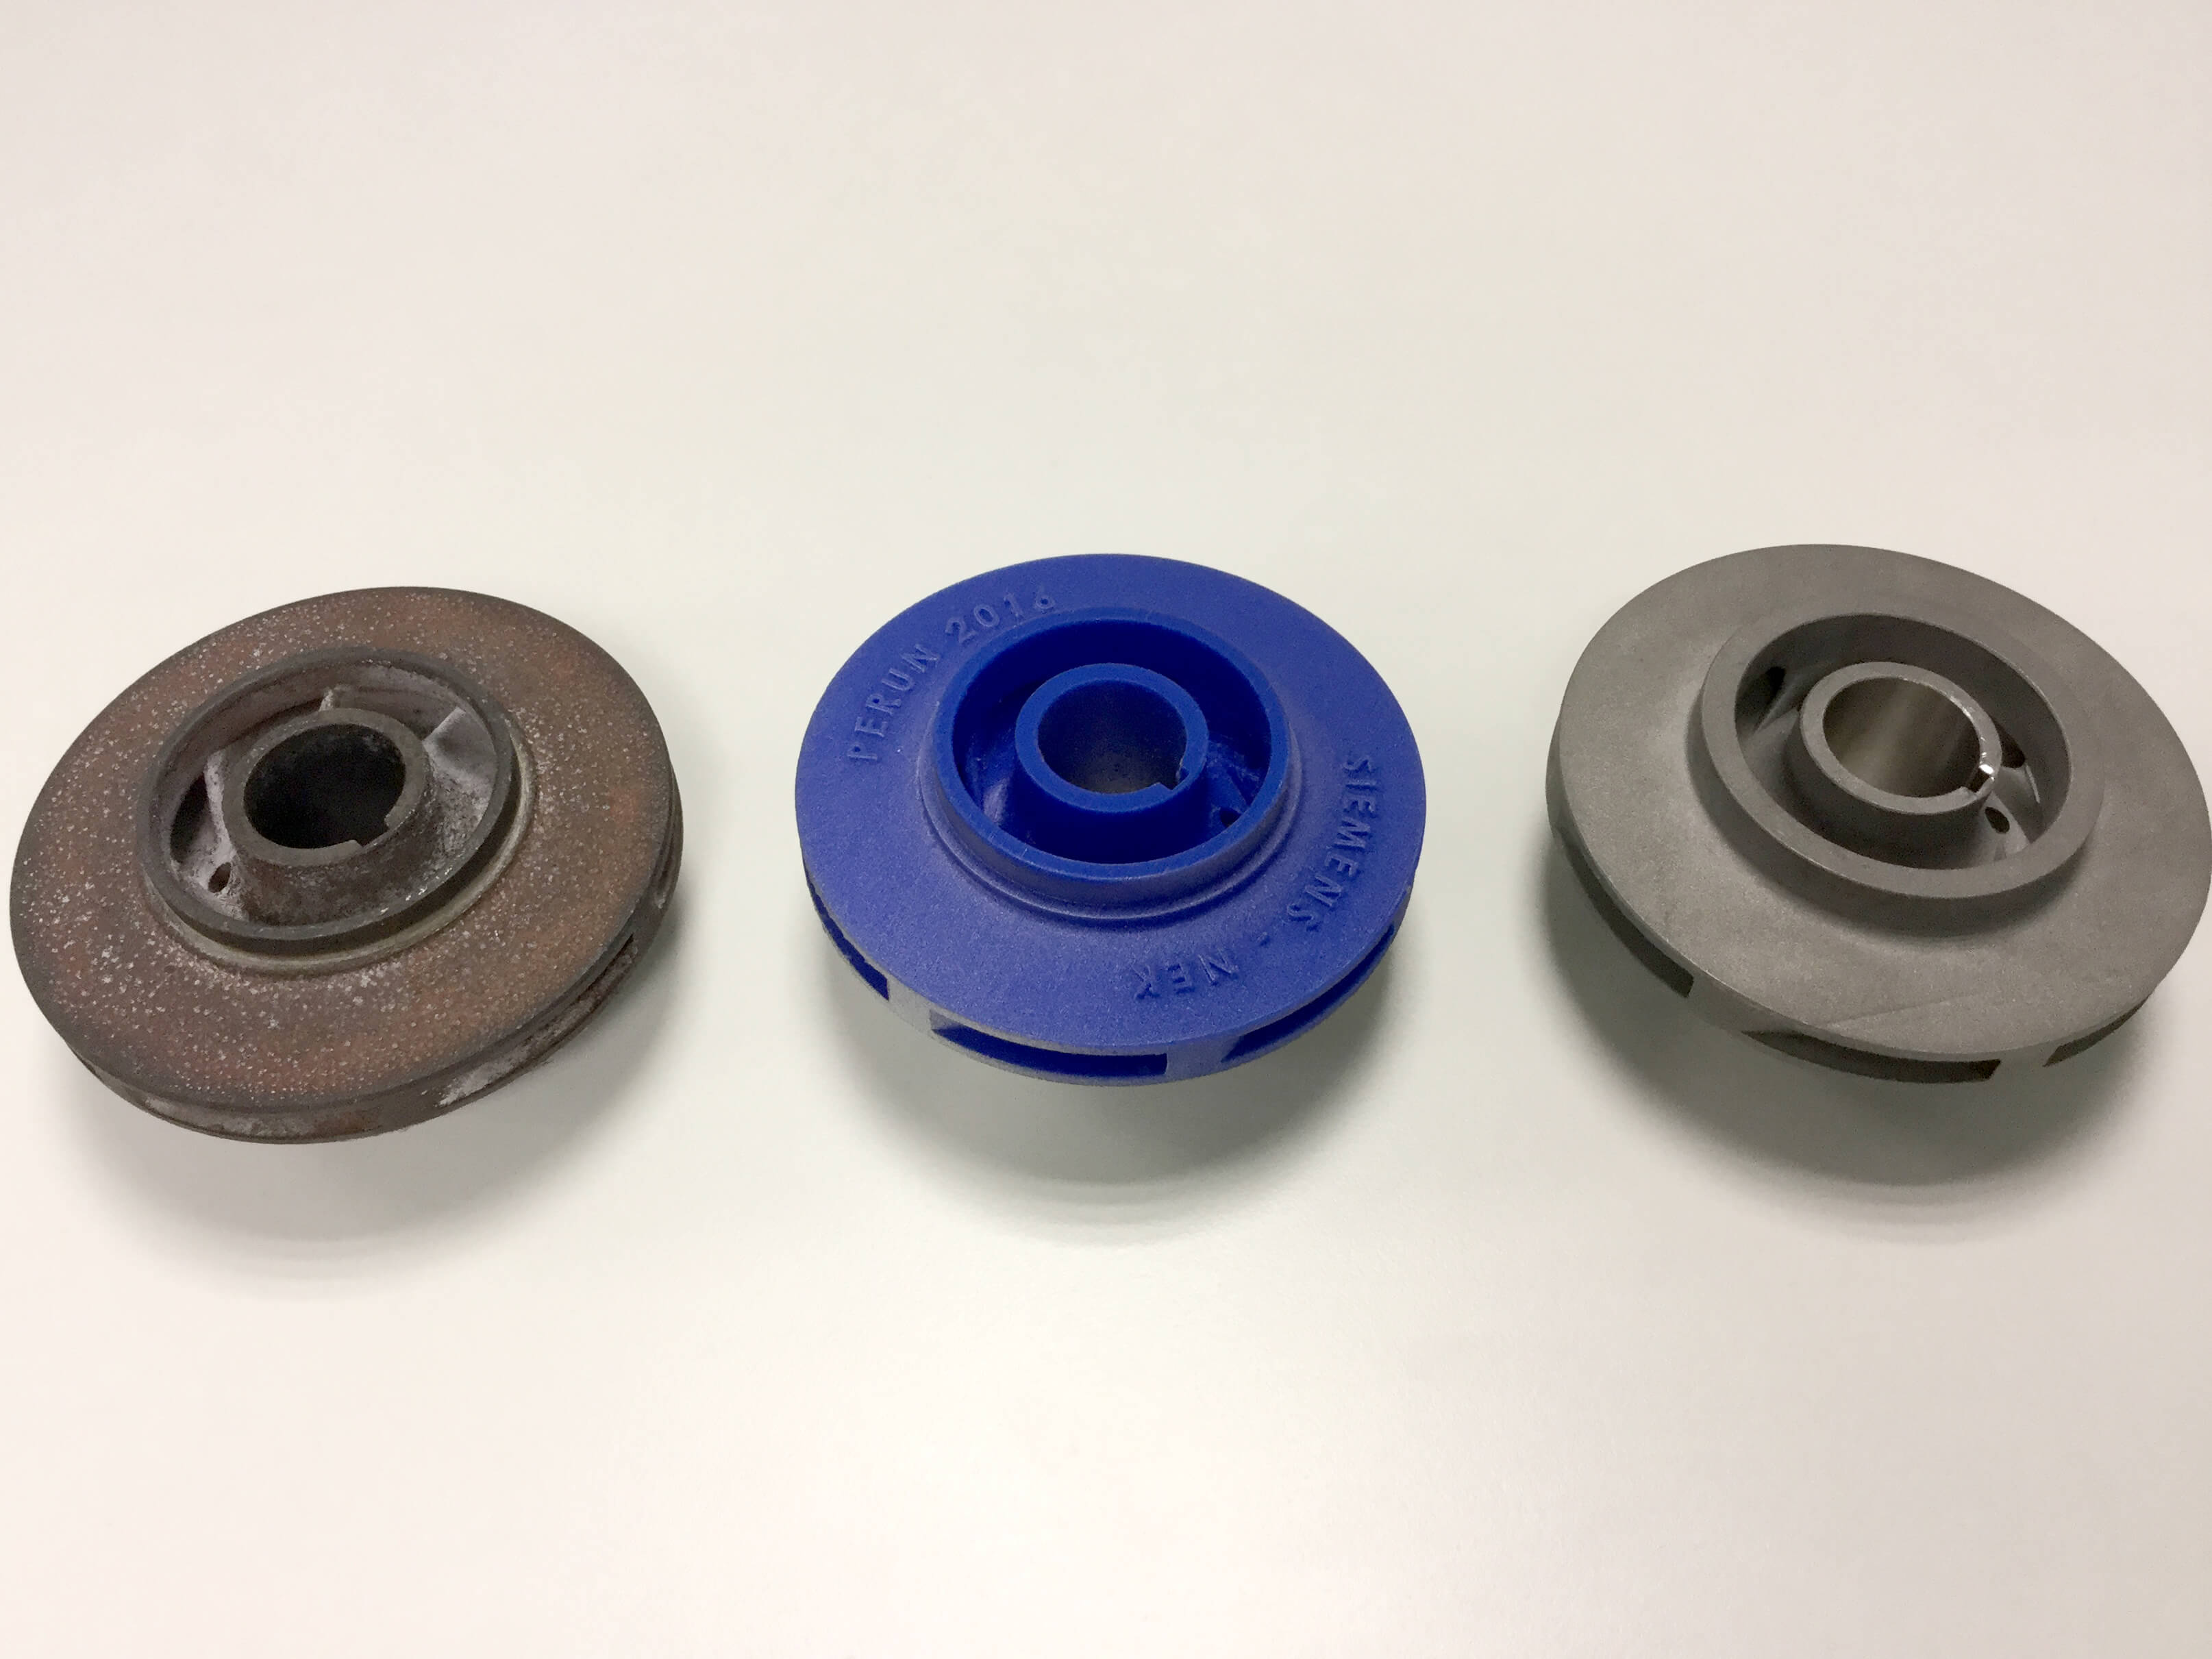 Siemens uses 3D printing to produce an impeller for a power plant